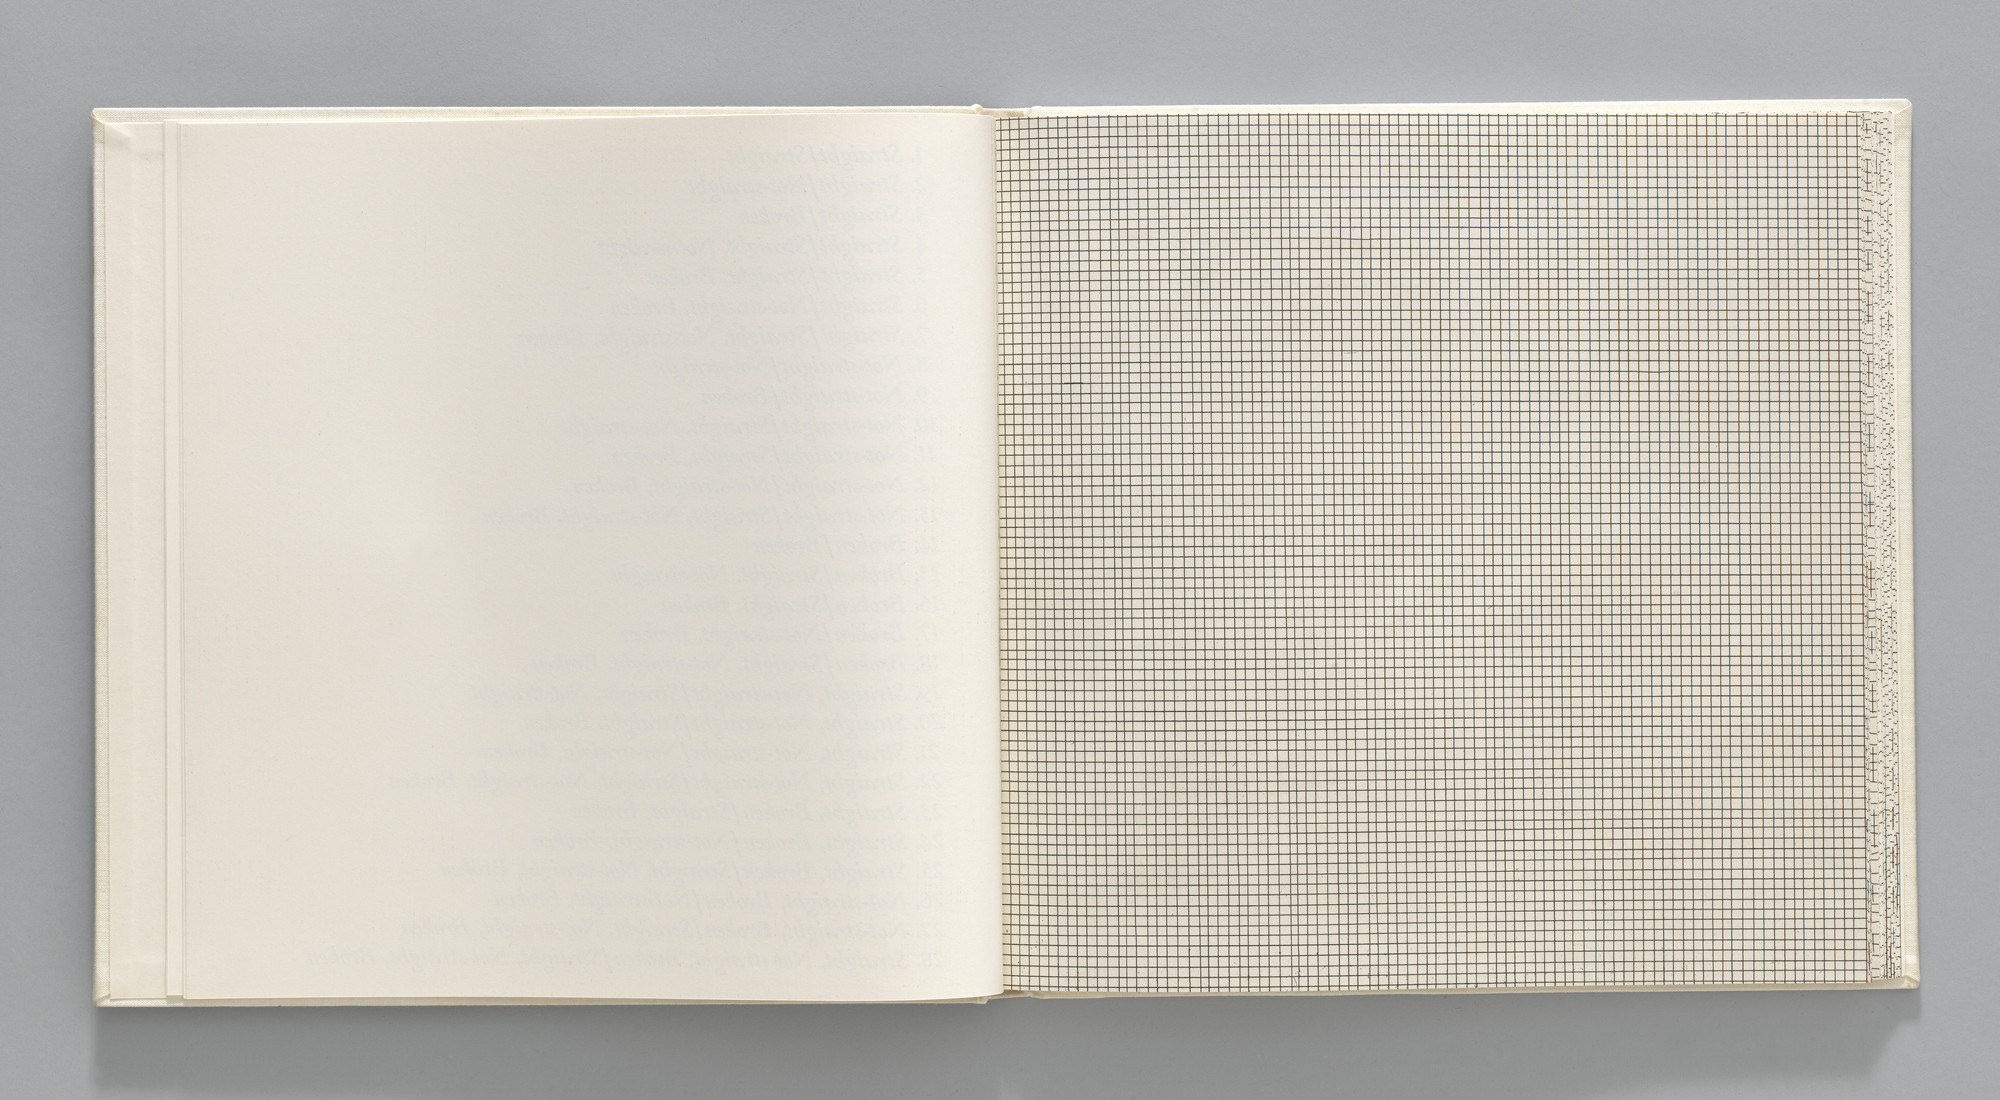 Sol LeWitt. Straight/Straight (plate, folio 4) from Grids, Using Straight Lines, Not-Broken Lines and Broken Lines in all Their Possible Combinations. 1973